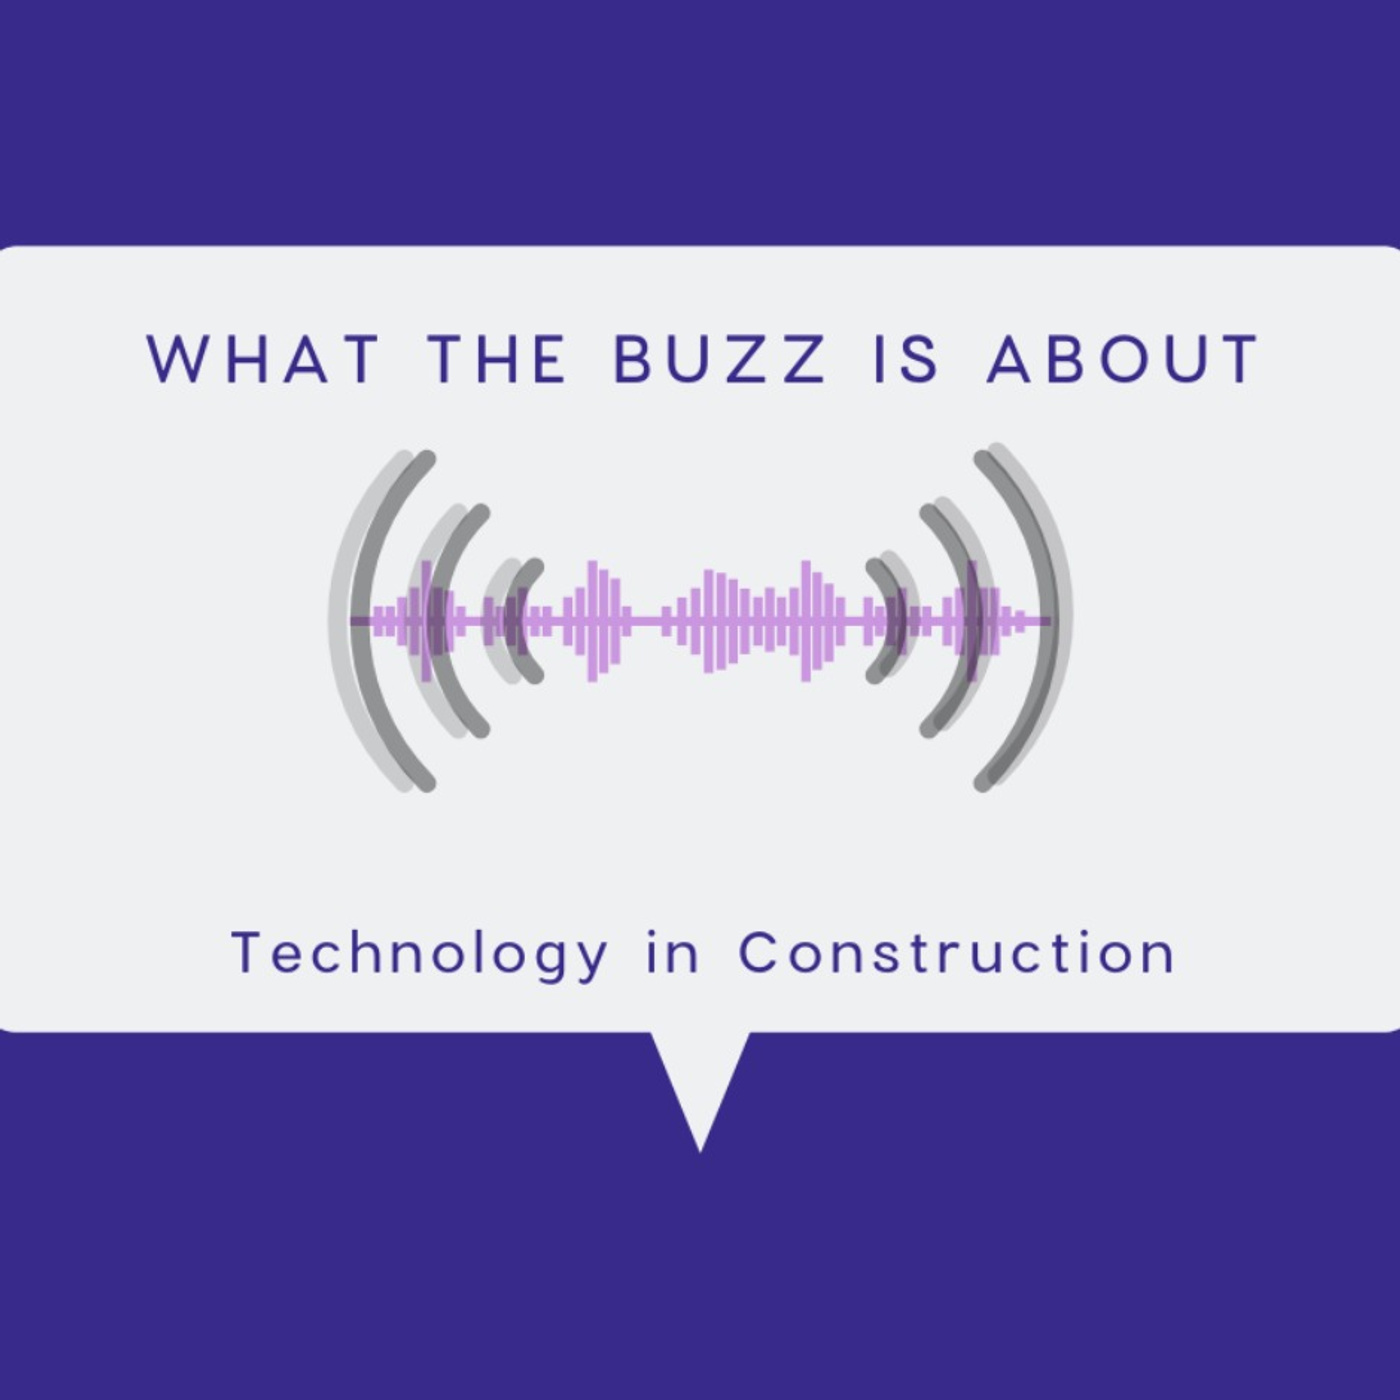 Technology in Construction